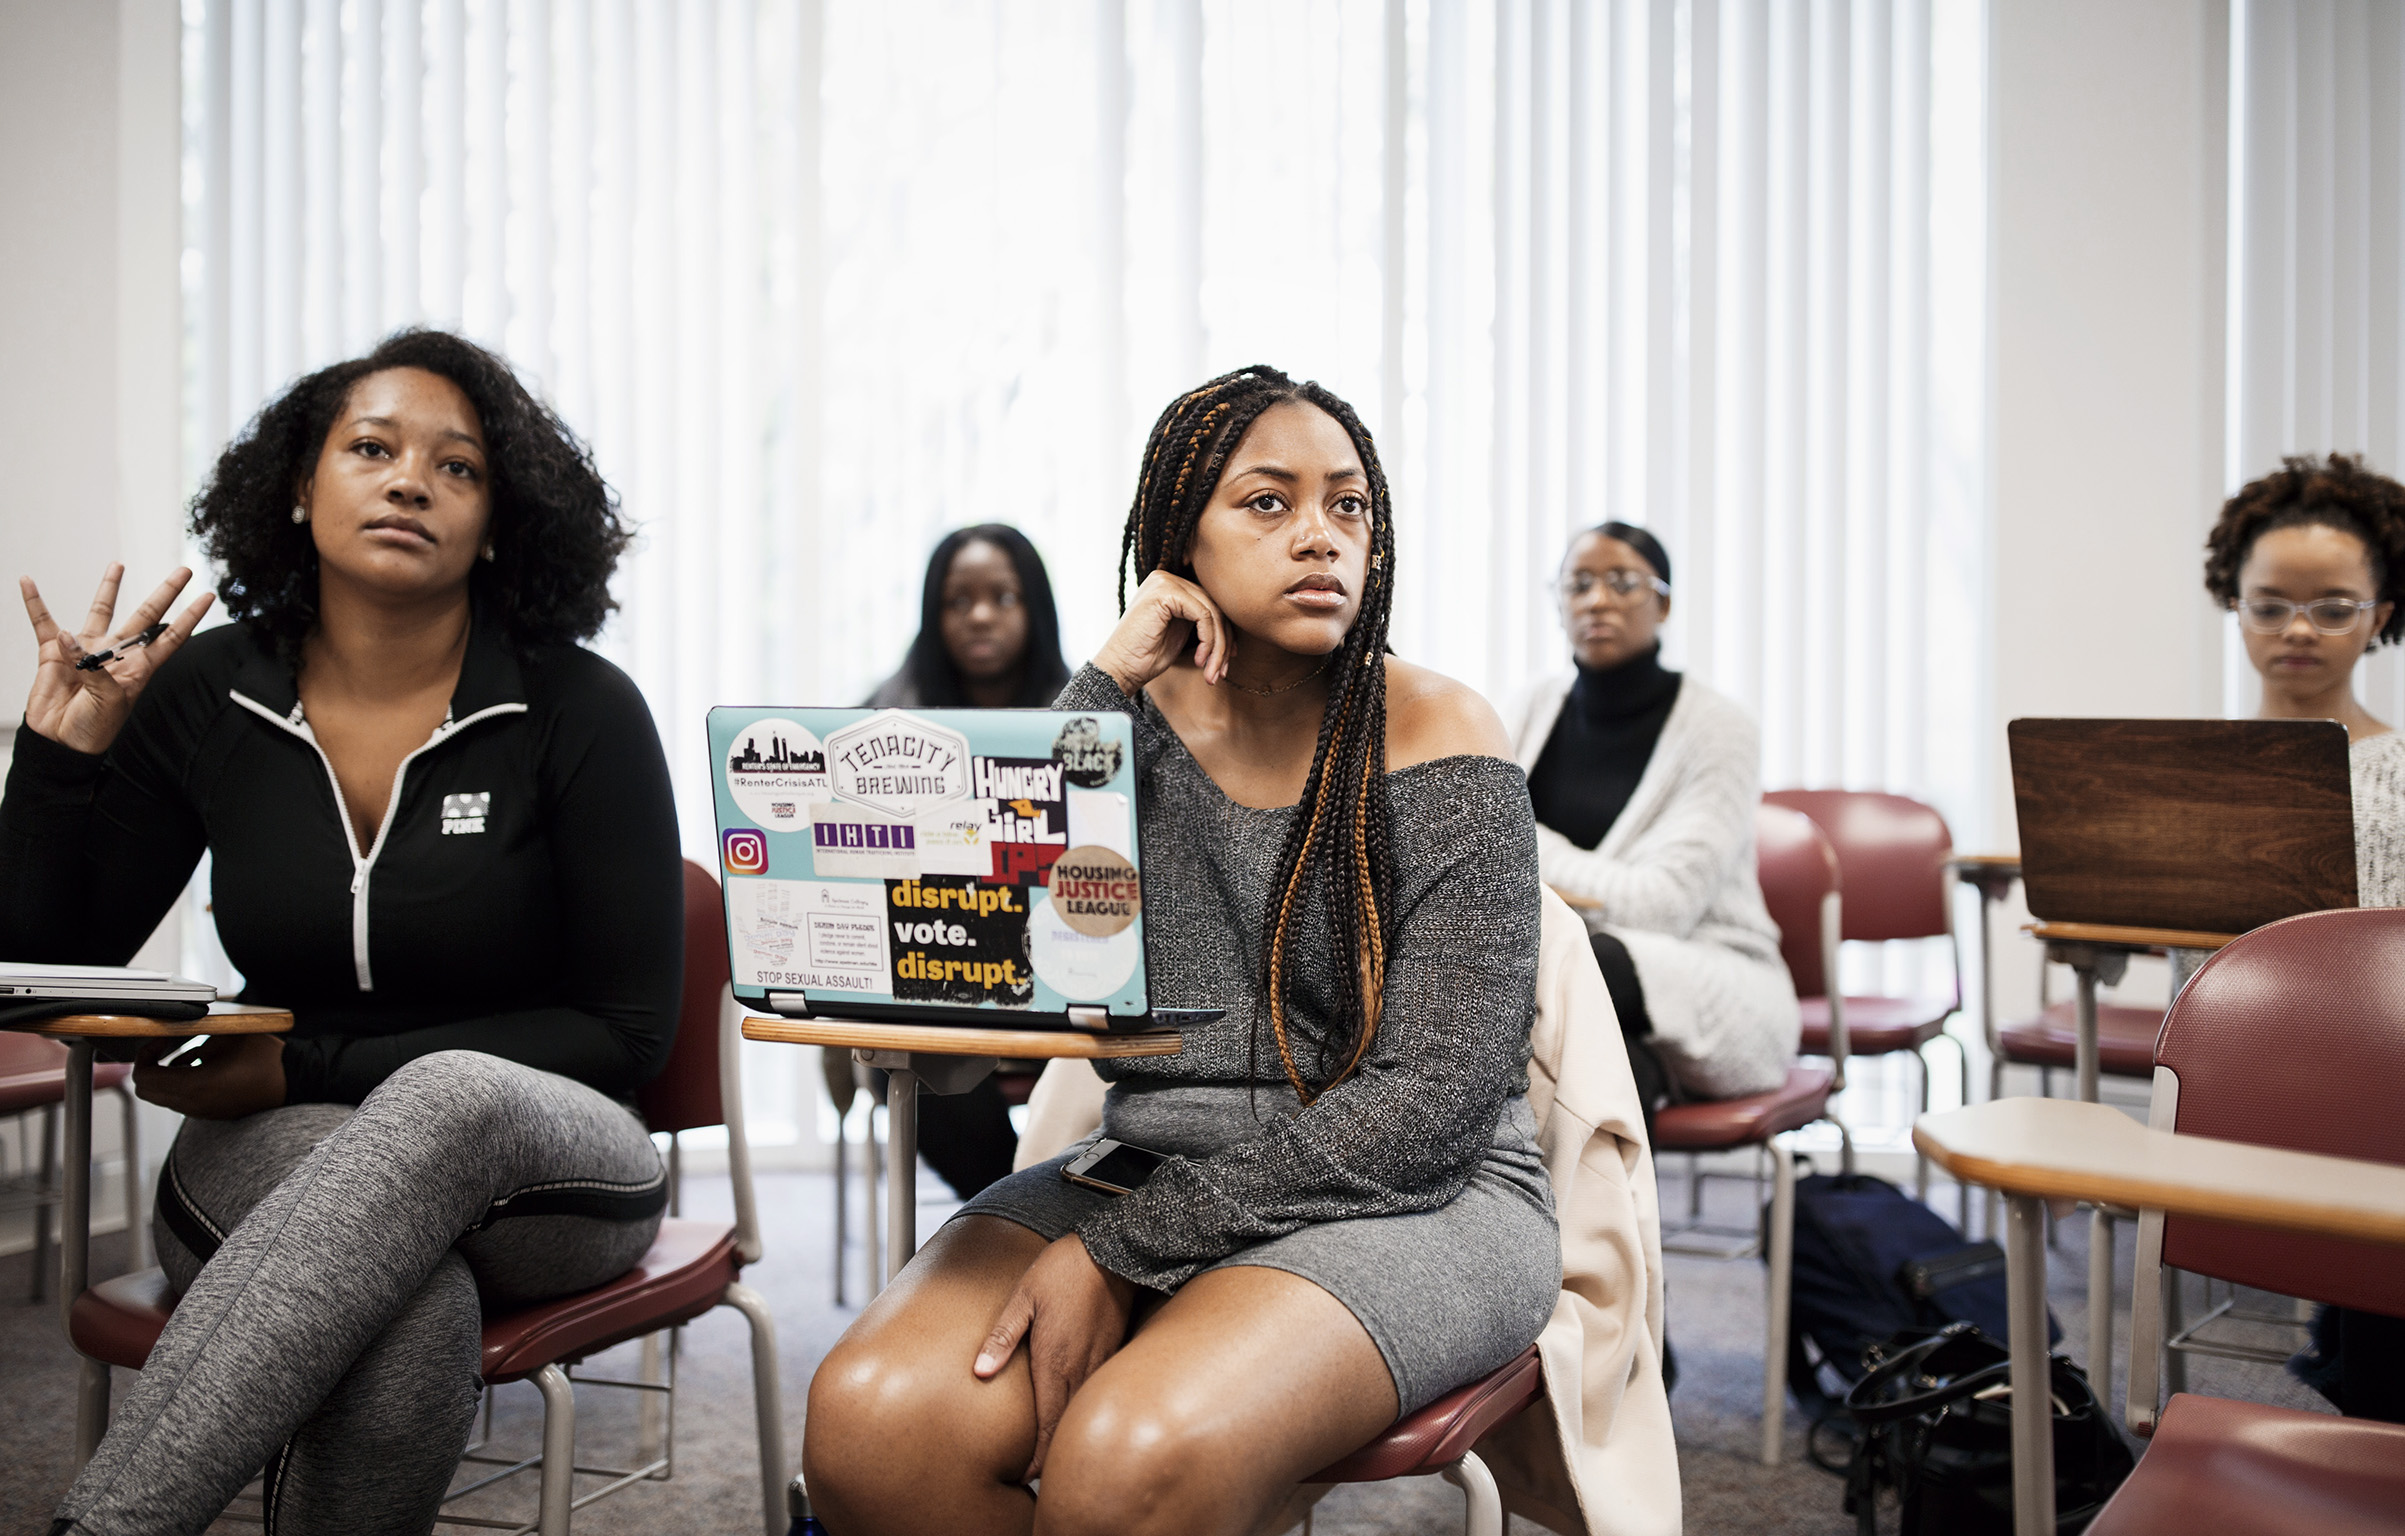 Spelman College Student Government Association president Jill Cartwright attends a class on April 9